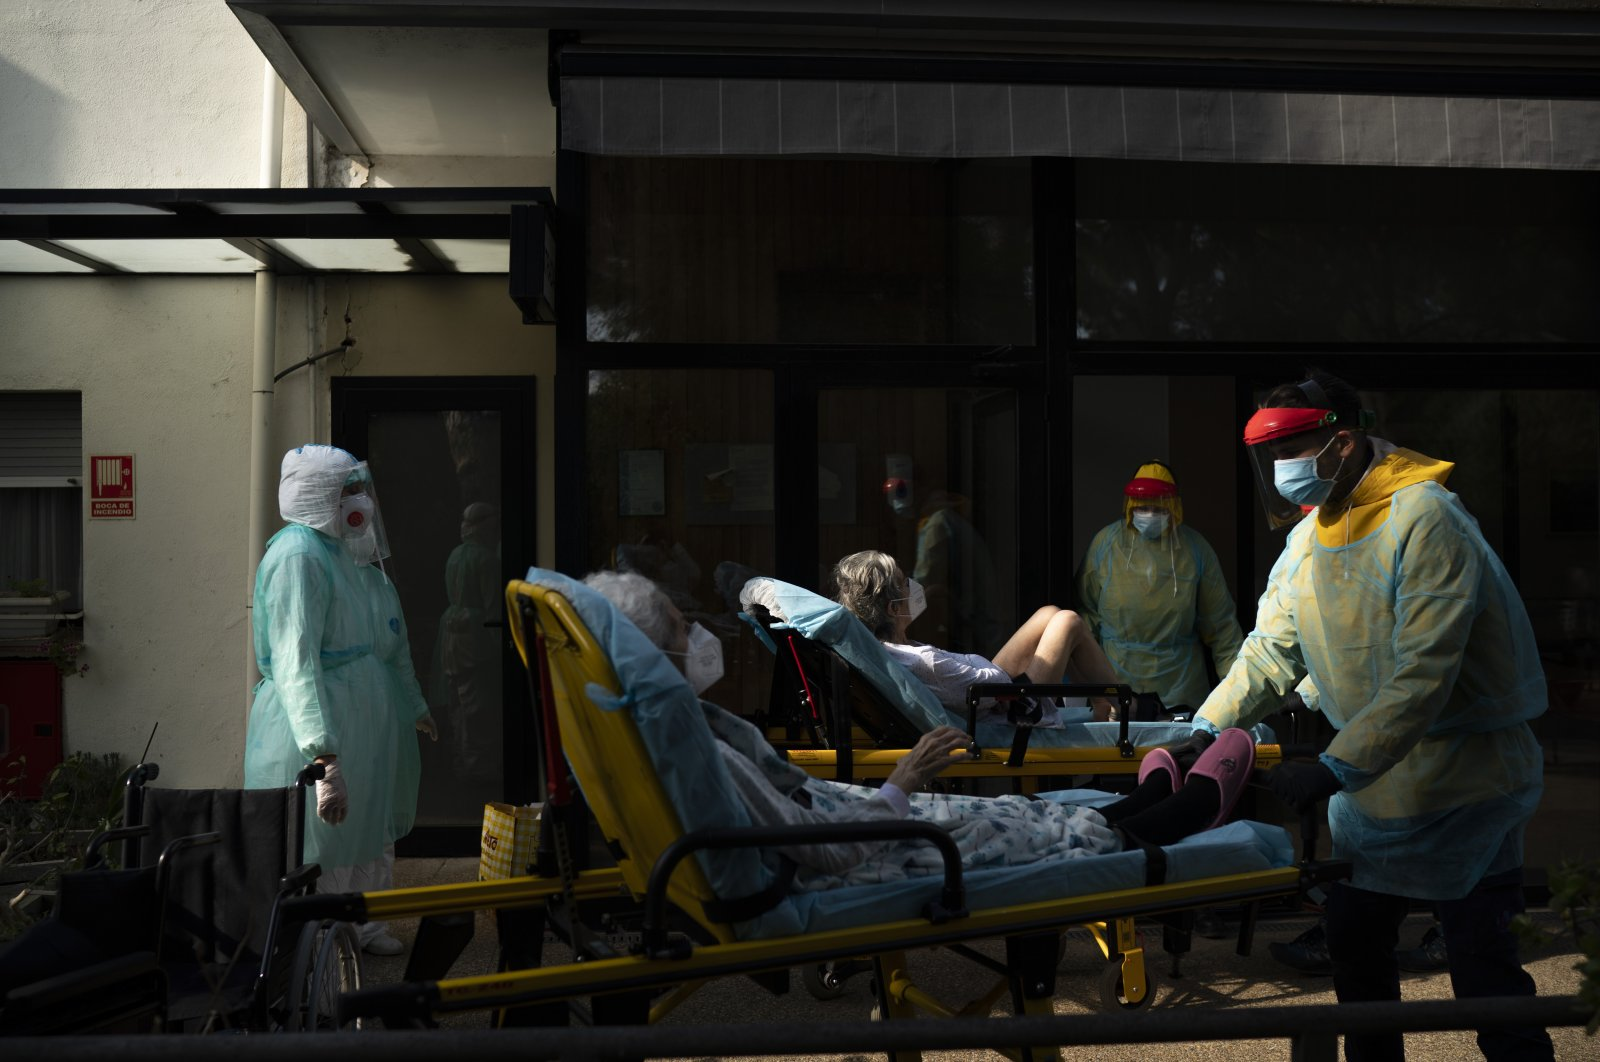 Health workers transport two elderly residents of a nursing home on stretchers who tested positive for the coronavirus in Barcelona, Spain, April 11, 2020. (AP Photo)